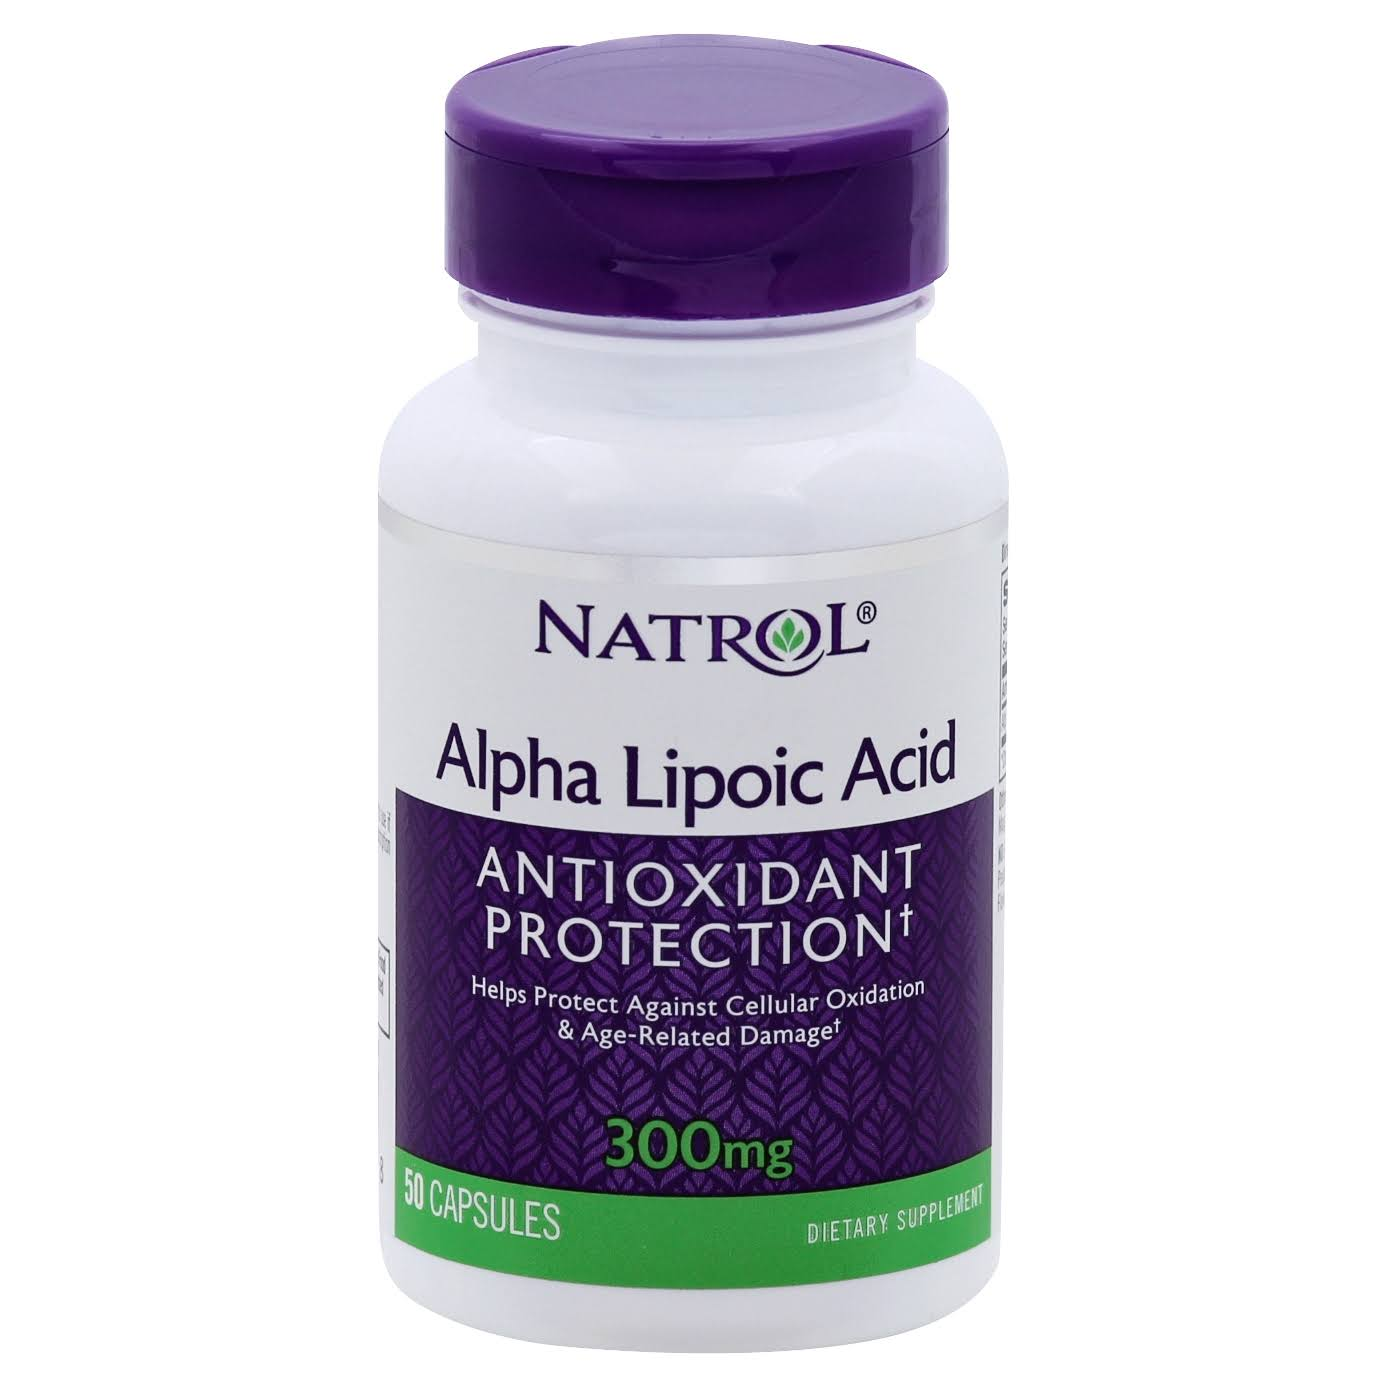 Natrol Alpha Lipoic Acid Dietary Supplement - 300mg, 50 Capsules